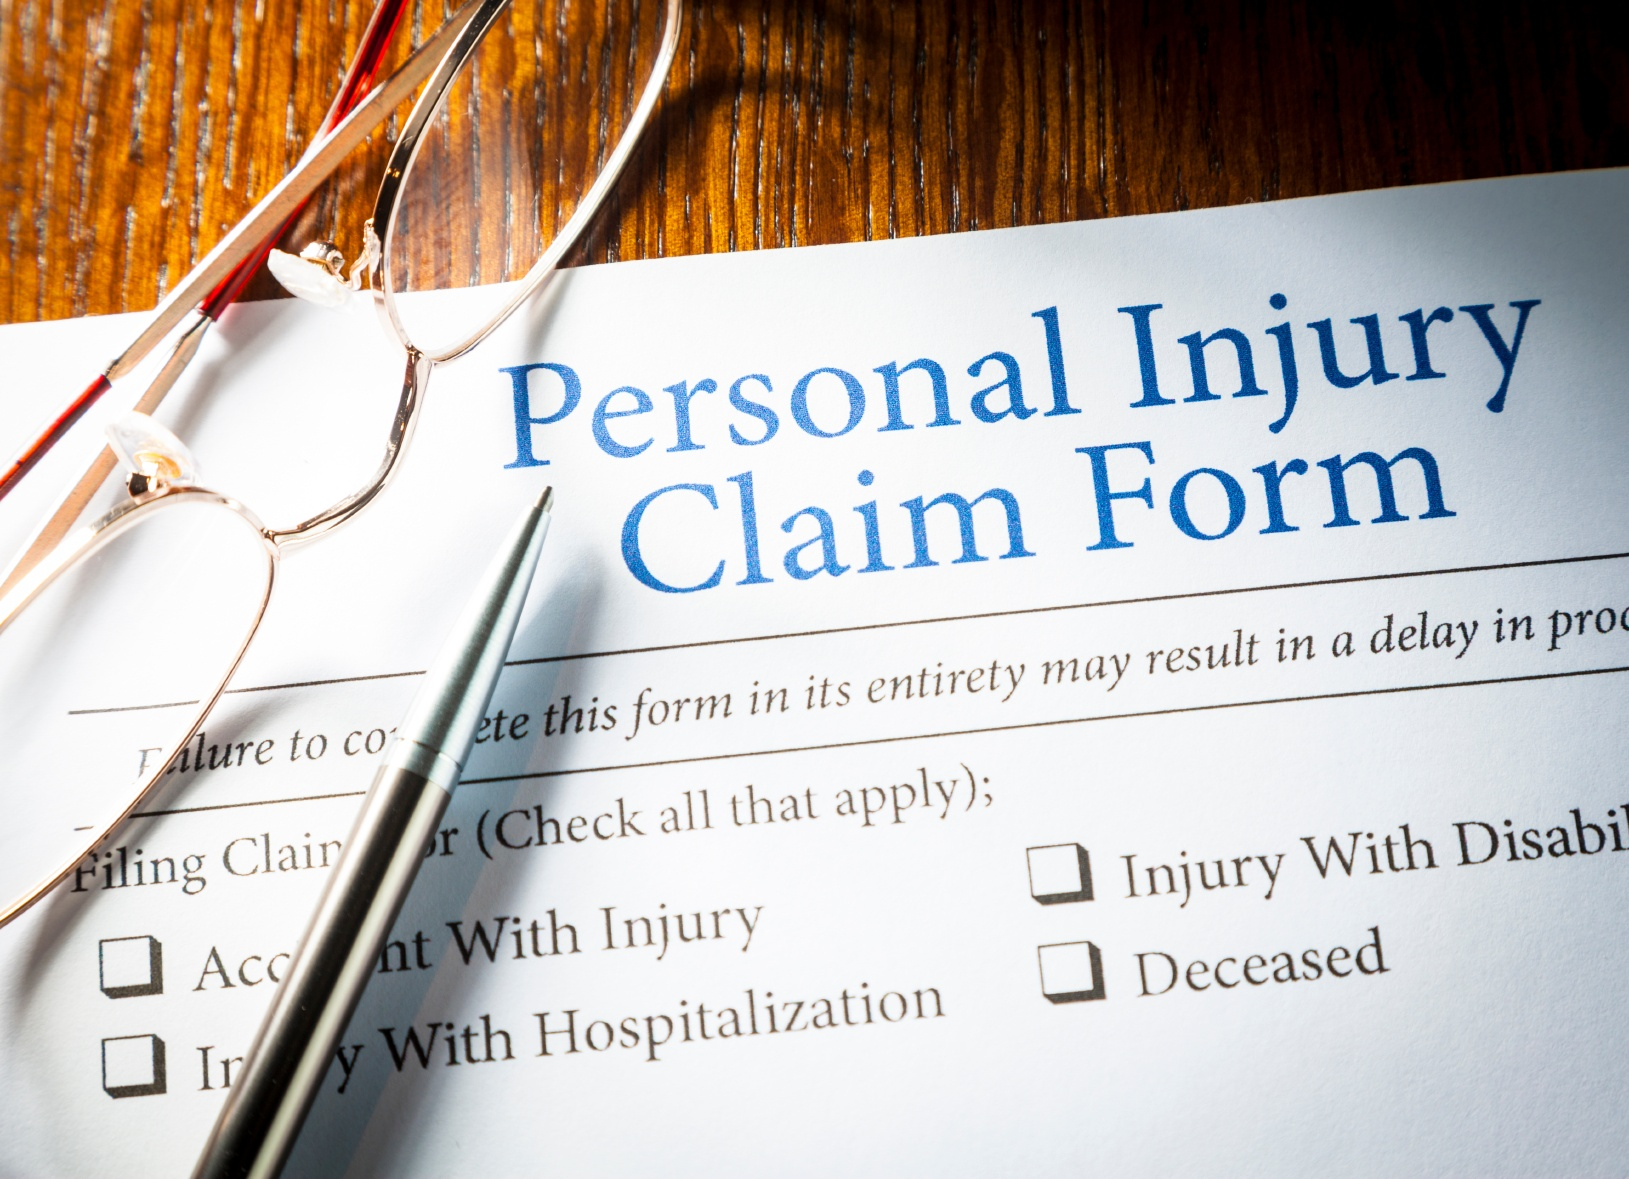 Understanding injury claims and lawsuits